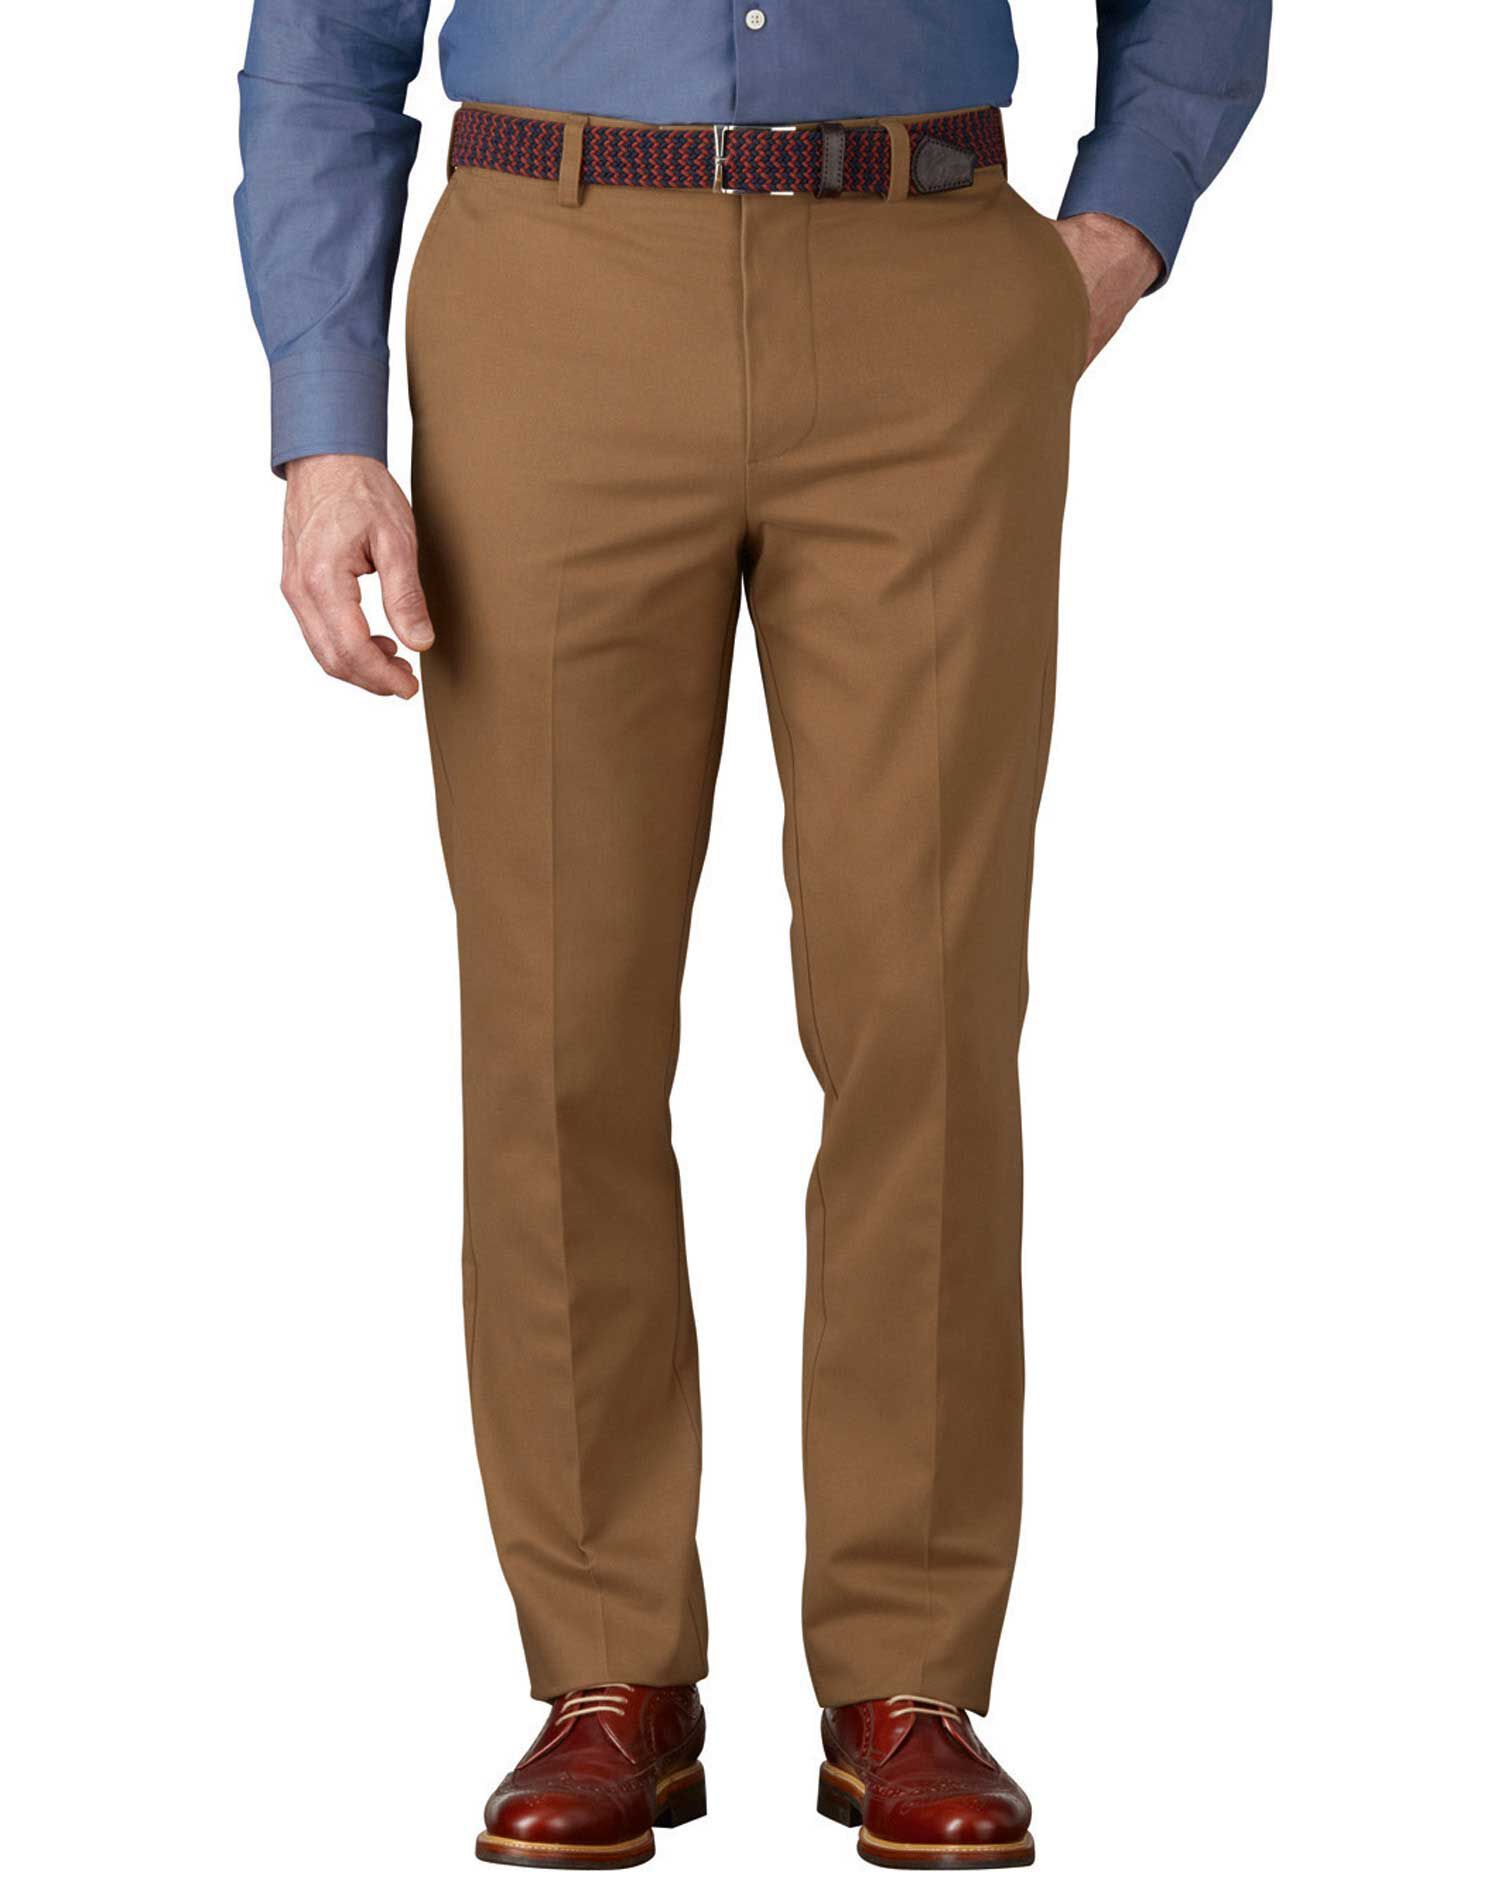 Camel Slim Fit Flat Front Non-Iron Cotton Chino Trousers Size W30 L34 by Charles Tyrwhitt